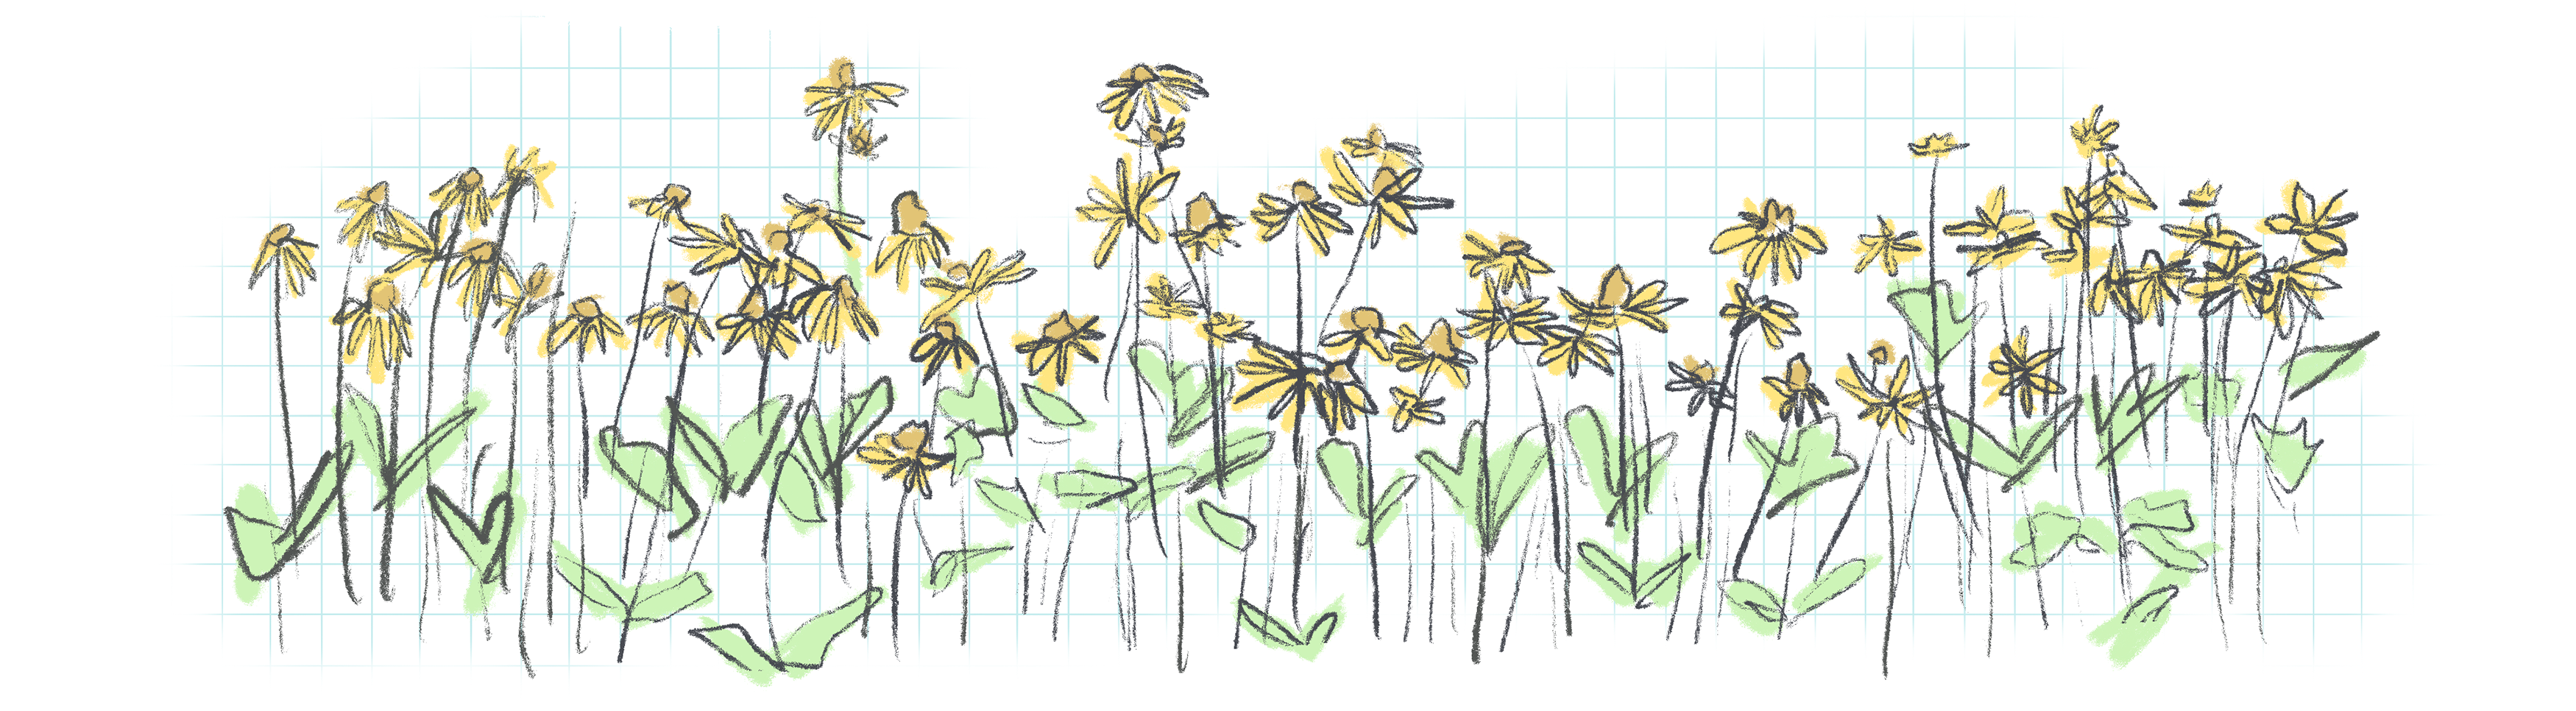 a sketchy illustration of yellow wildflowers against a graph paper background